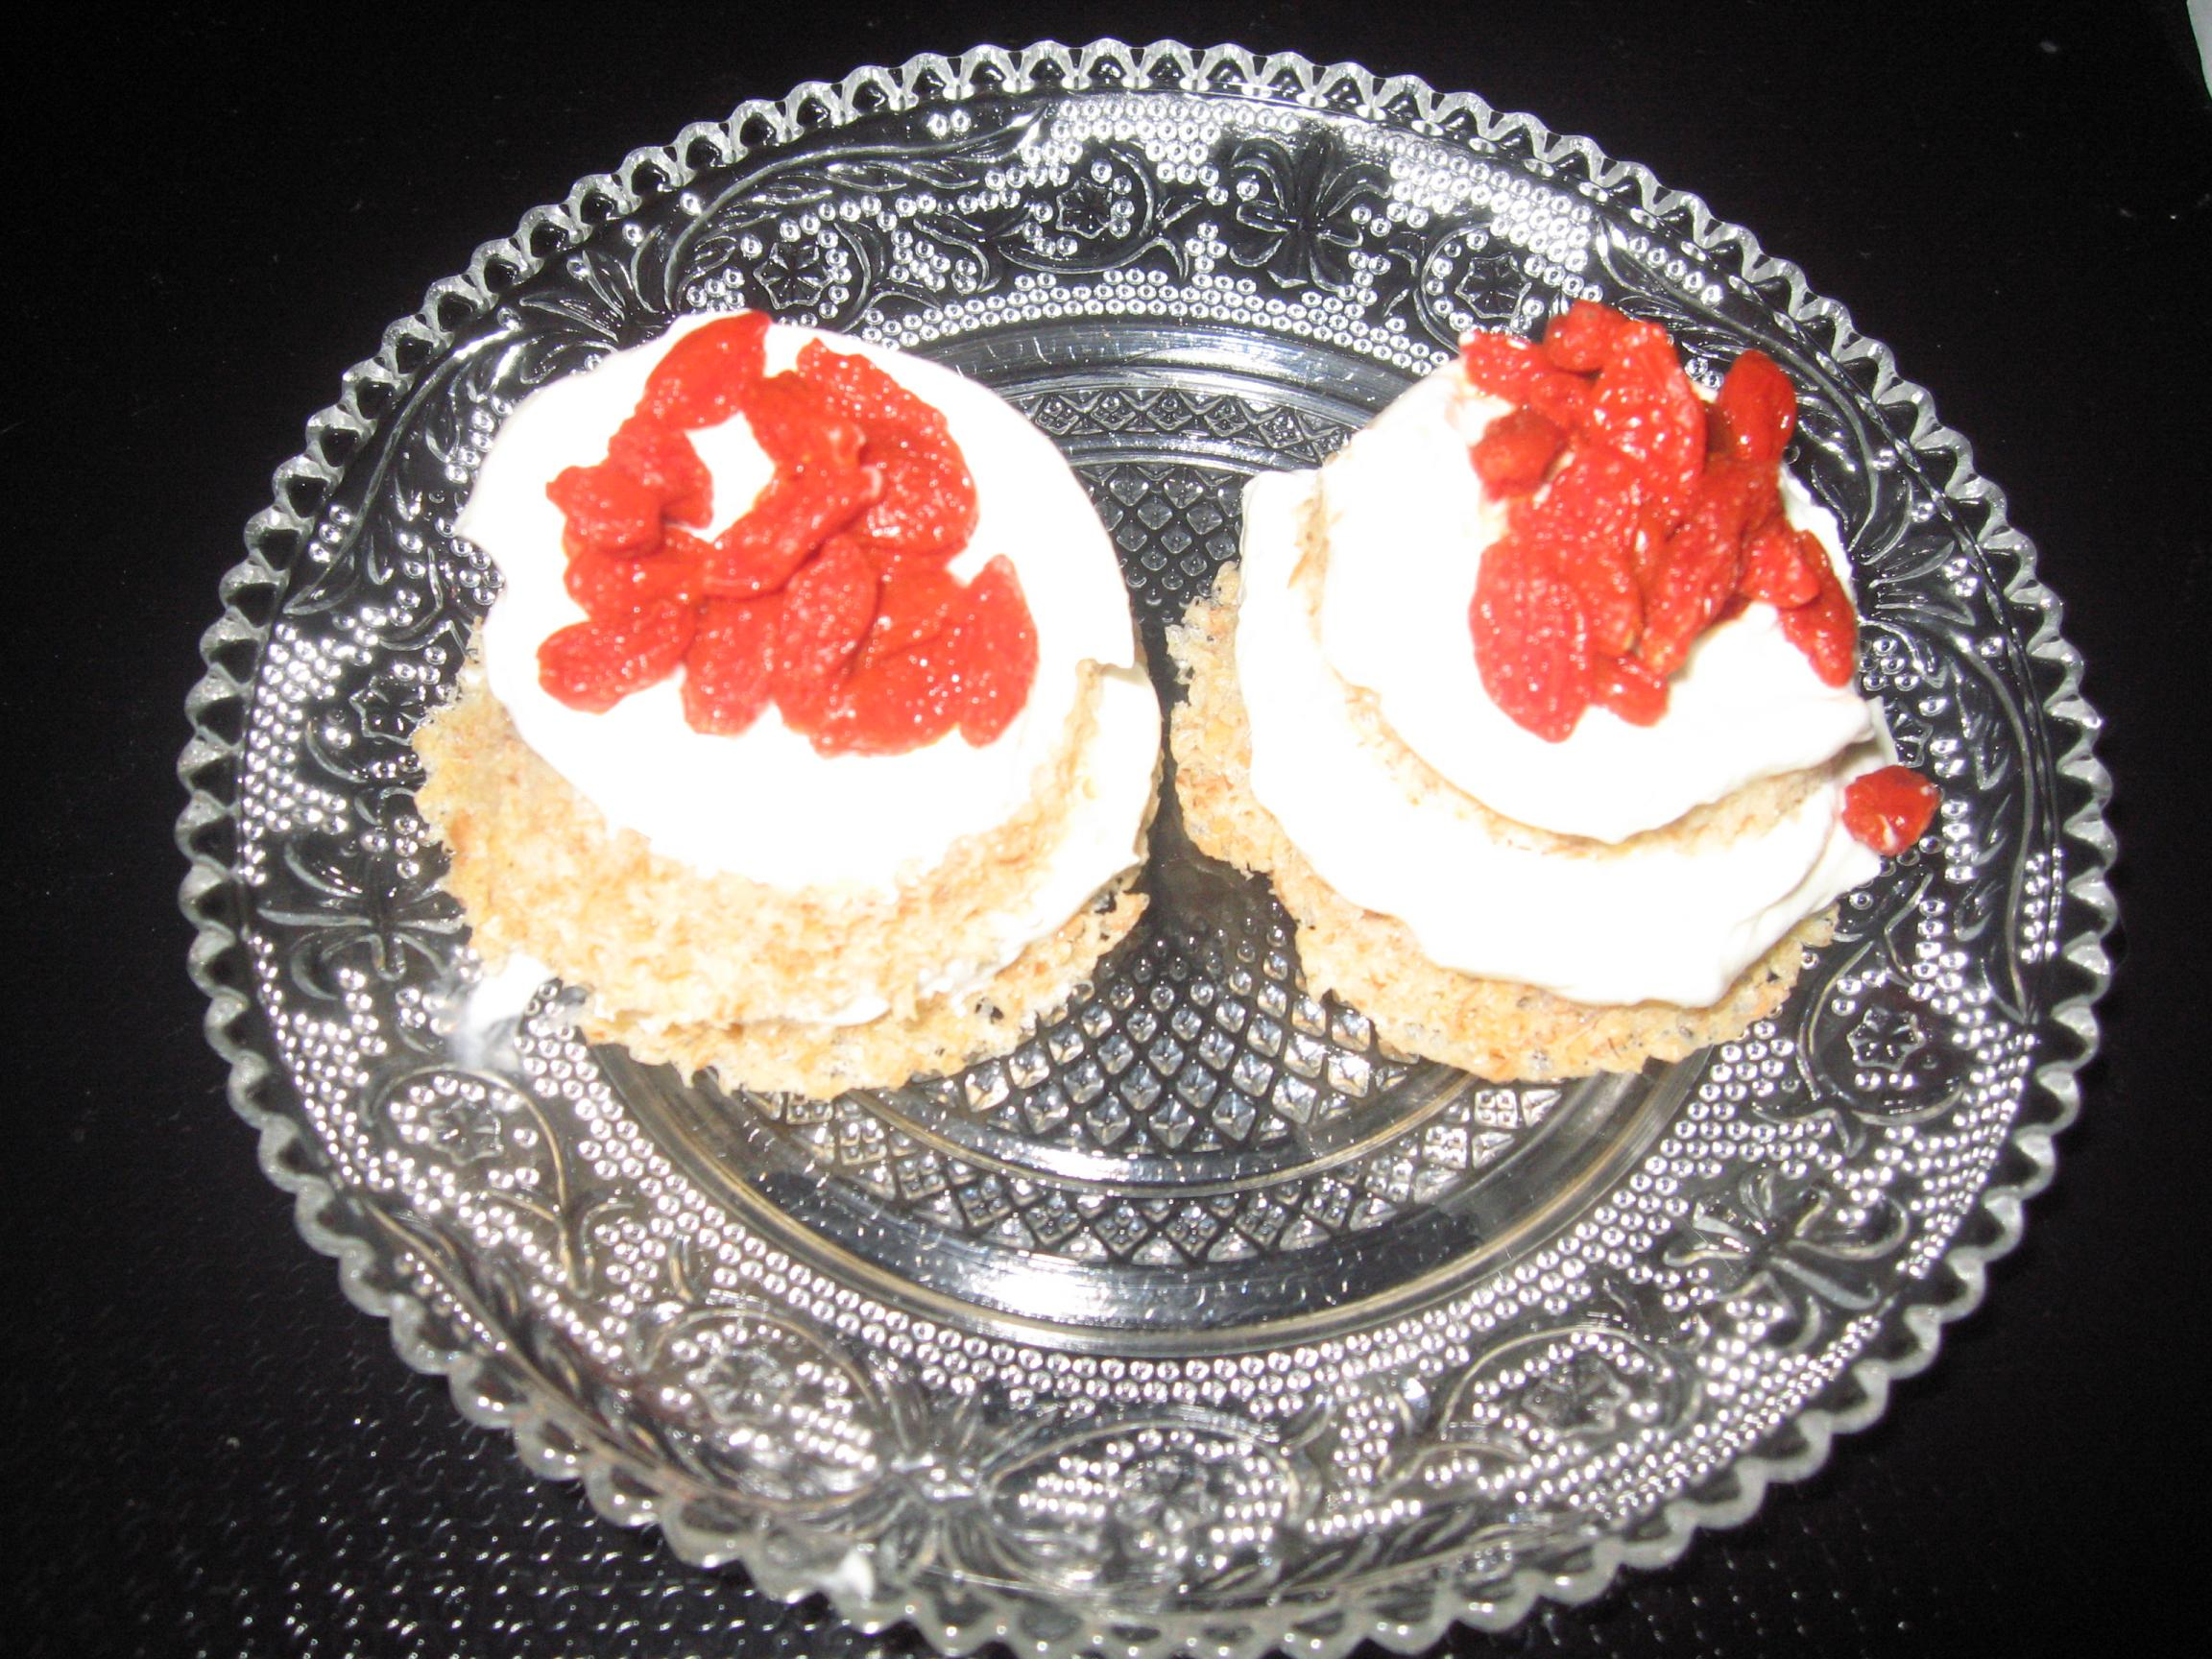 Microwave 'muffins' (also Attack and Conso)-goji-layered-muffins.jpg